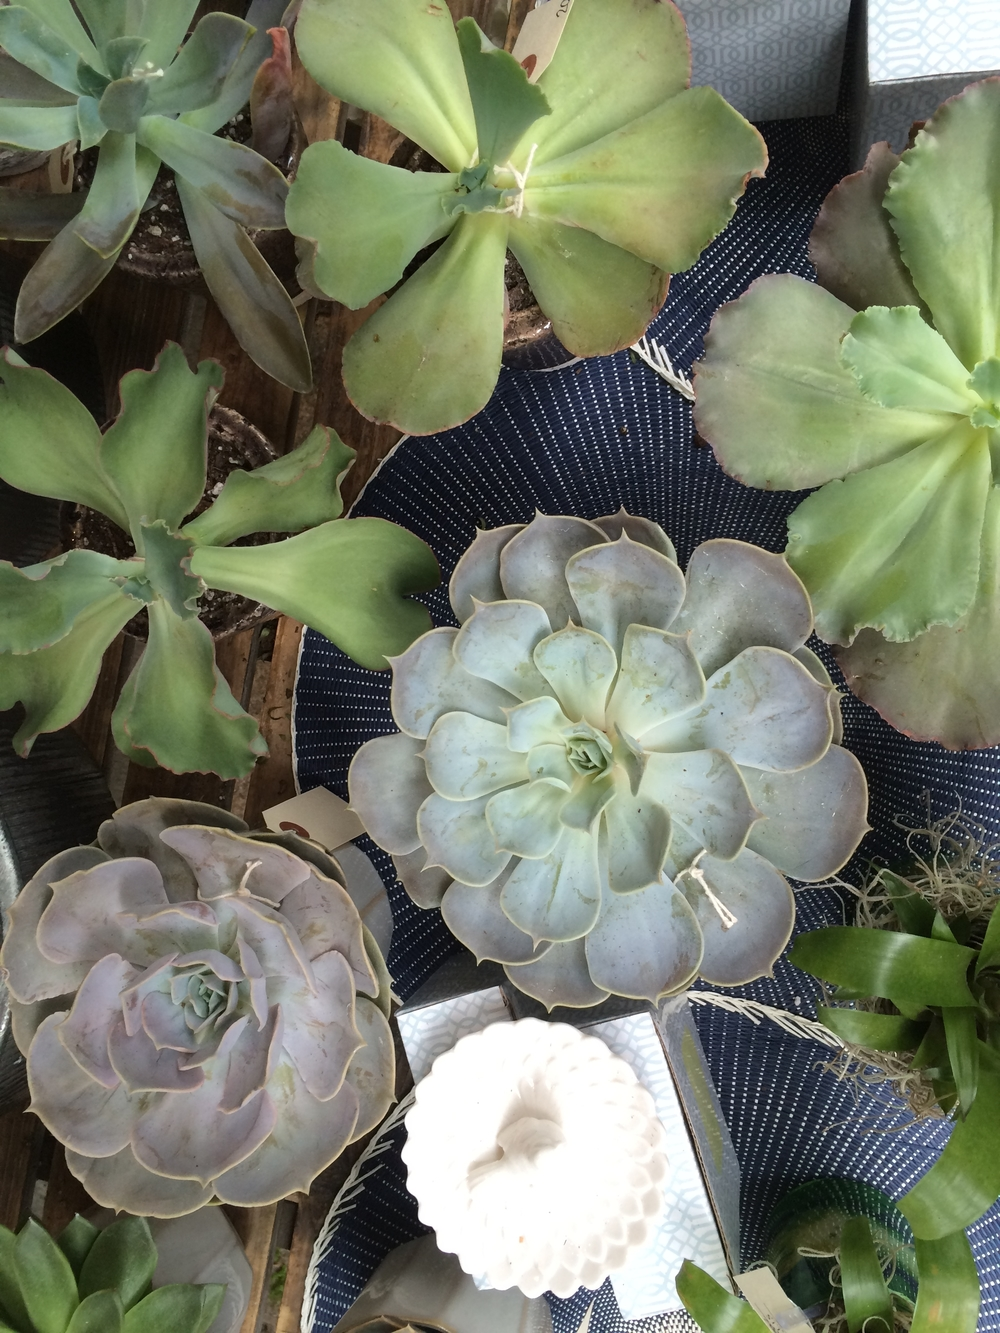 A sample of some of the large potted echeveria that we have arriving weekly.